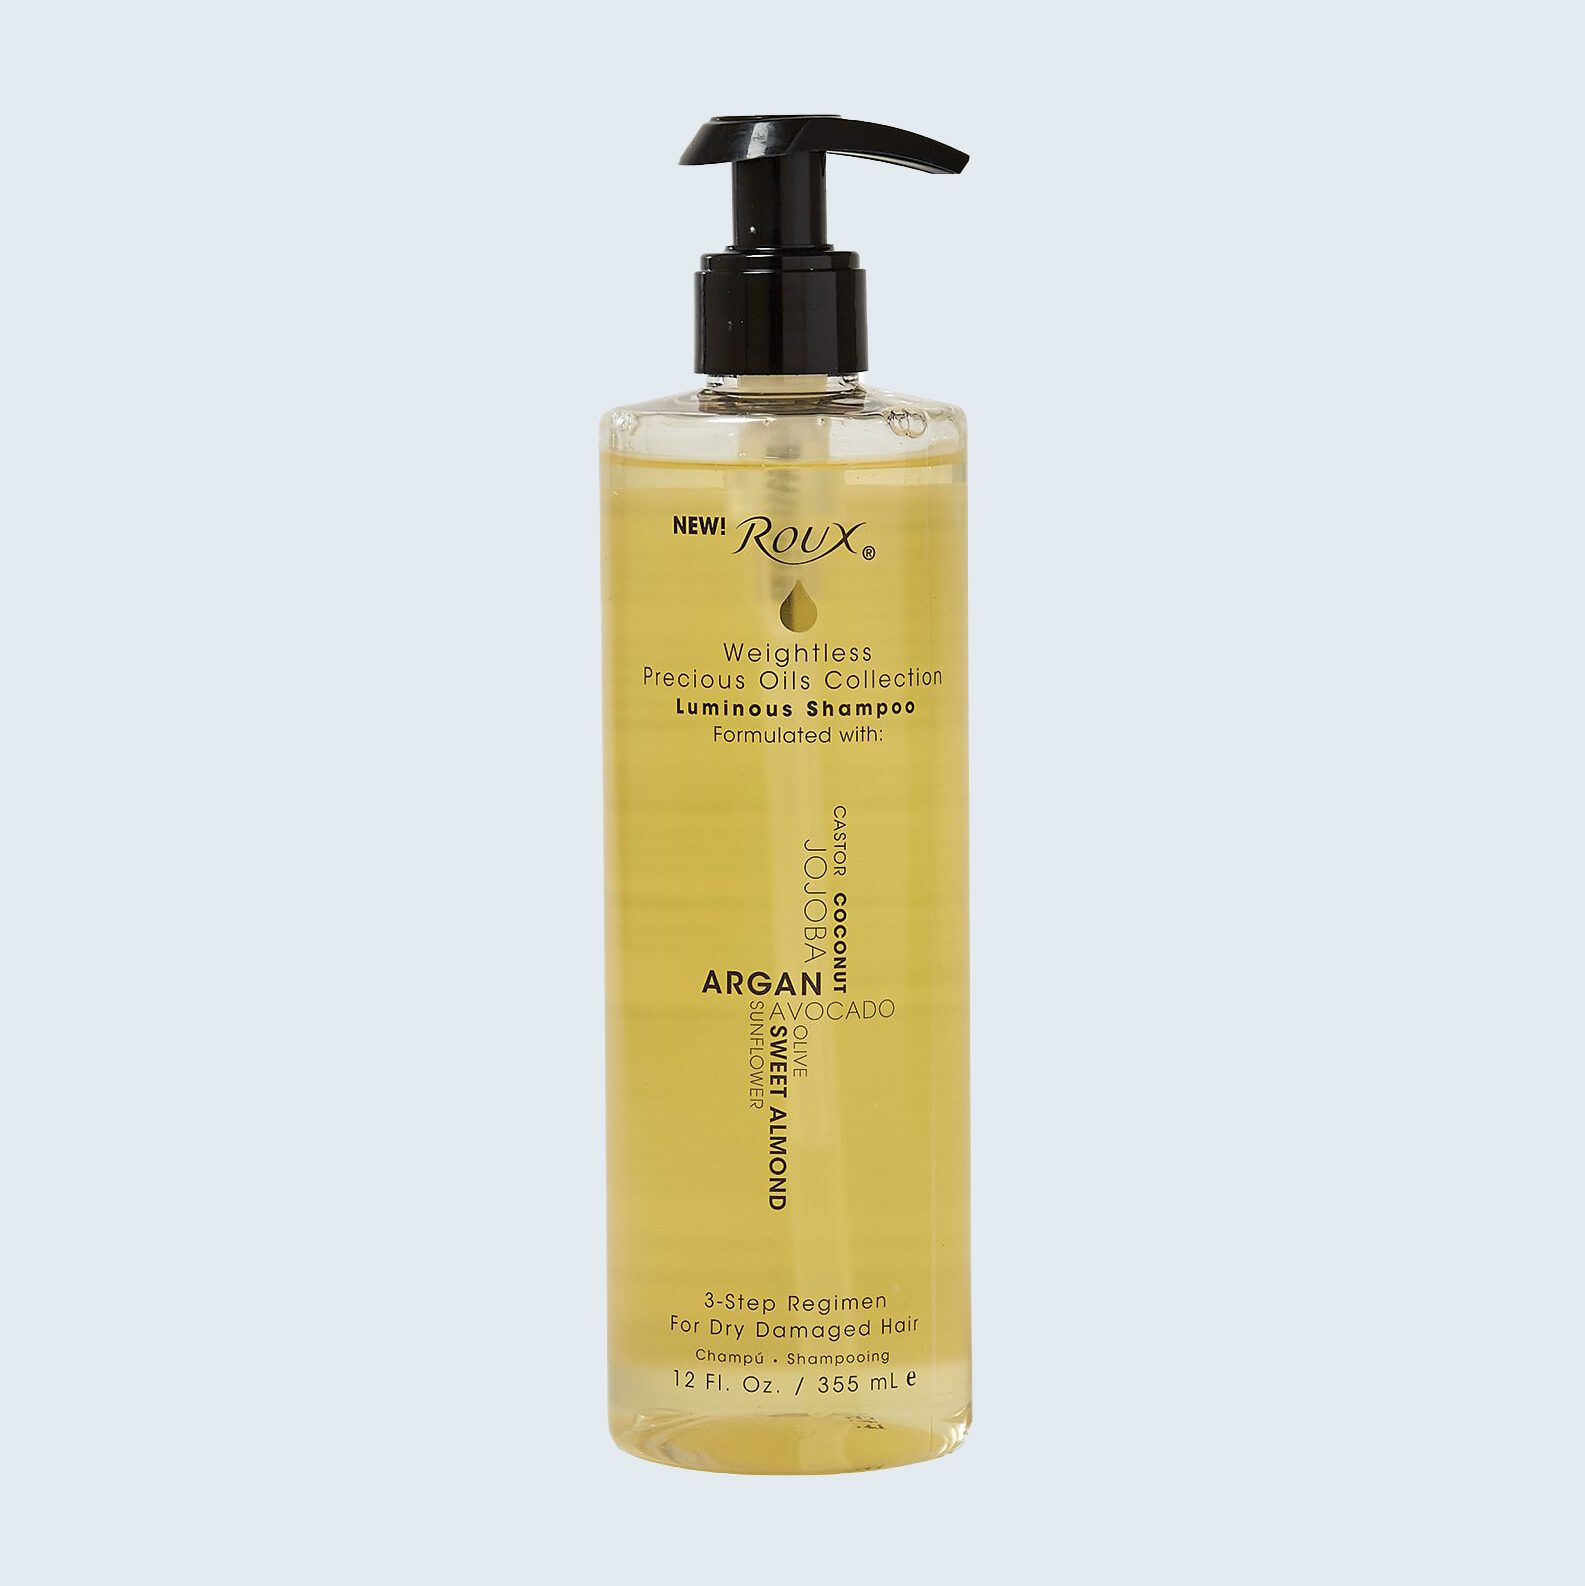 Roux Weightless Precious Oils Luminous Shampoo